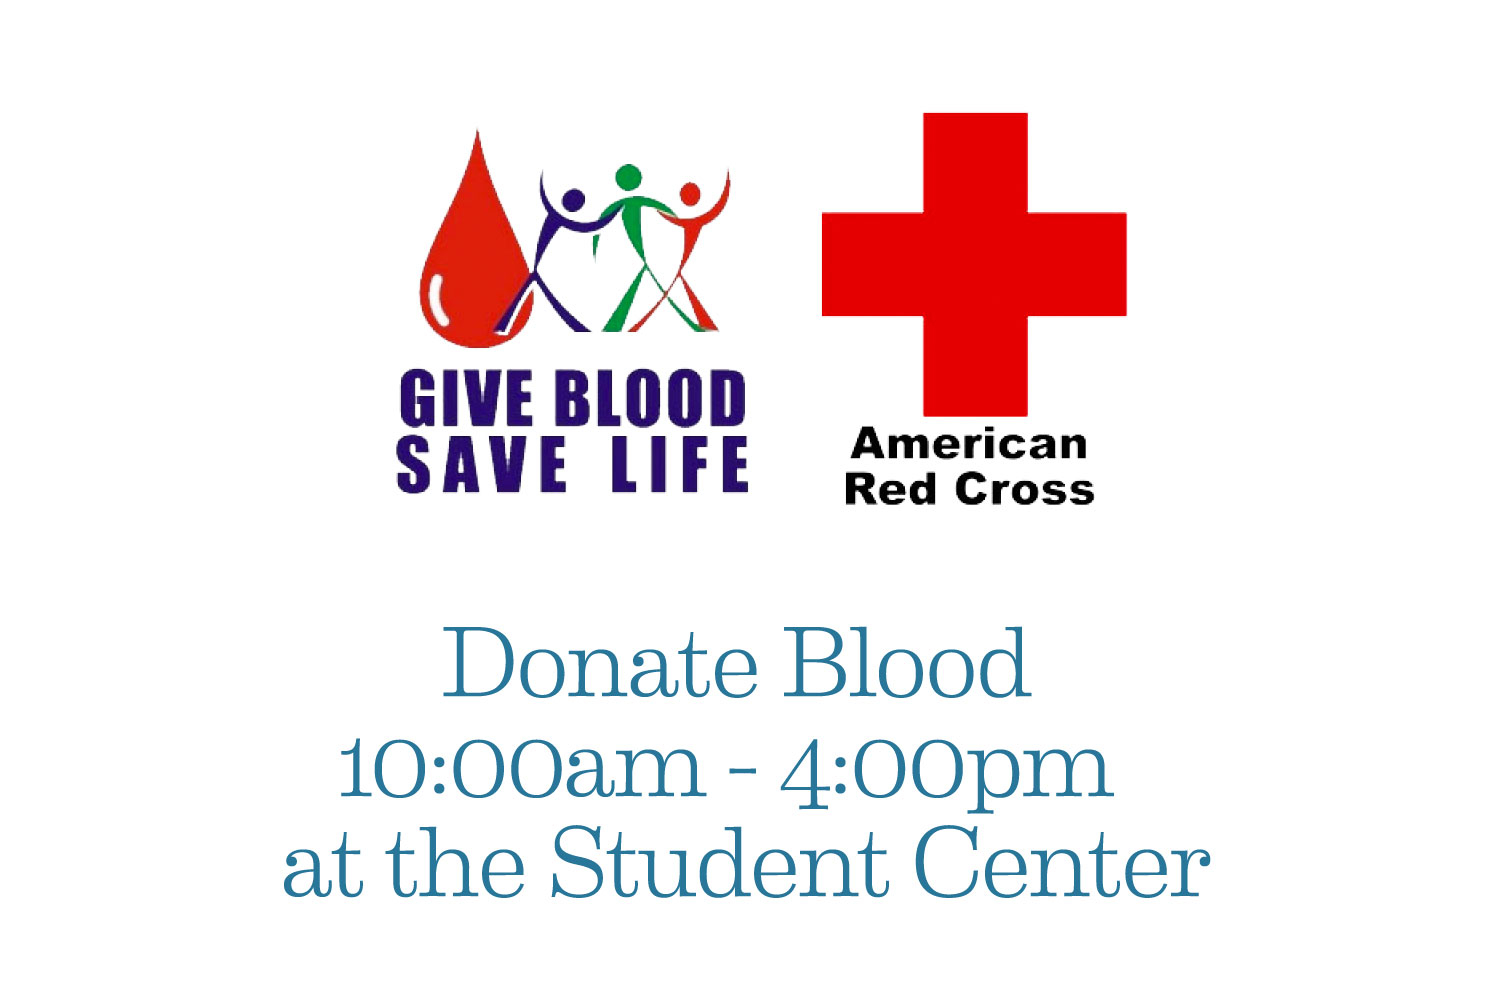 Donate blood poster